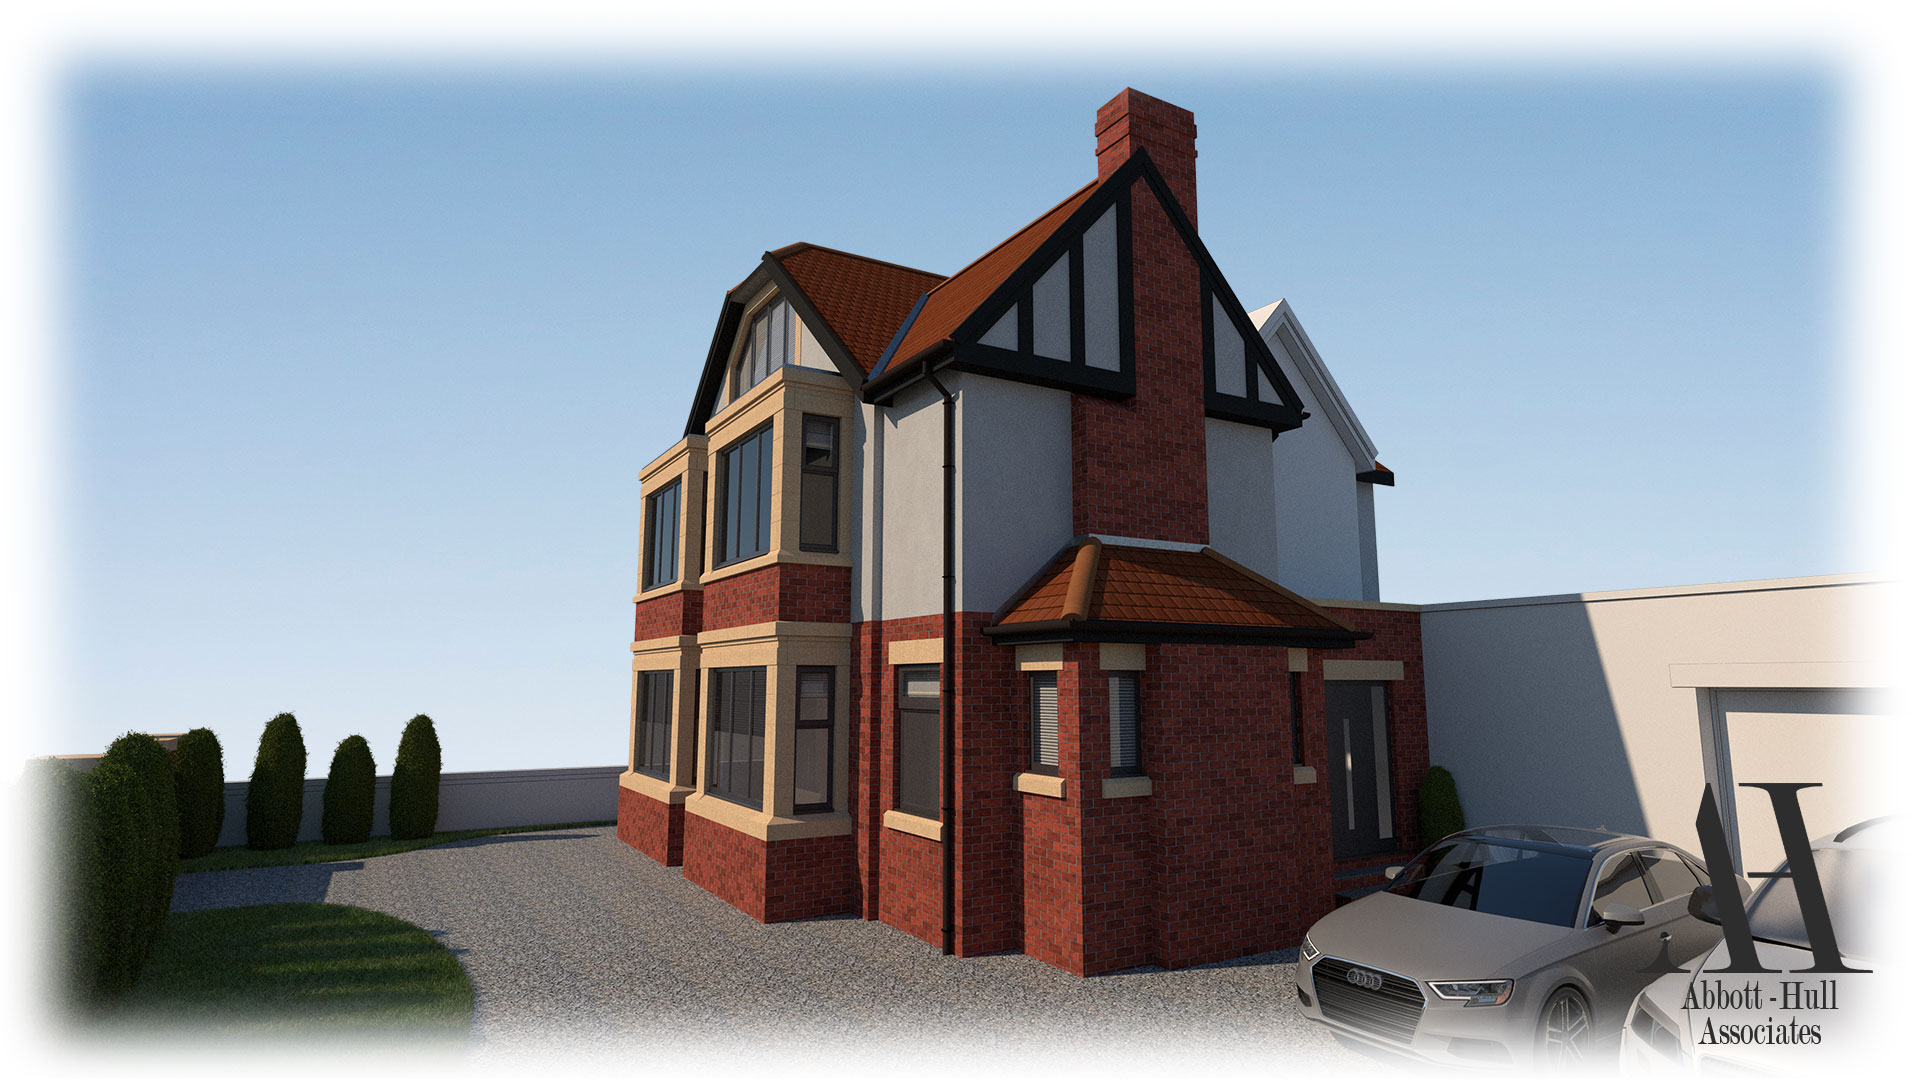 Princes Way, Fleetwood - Proposed Visual C